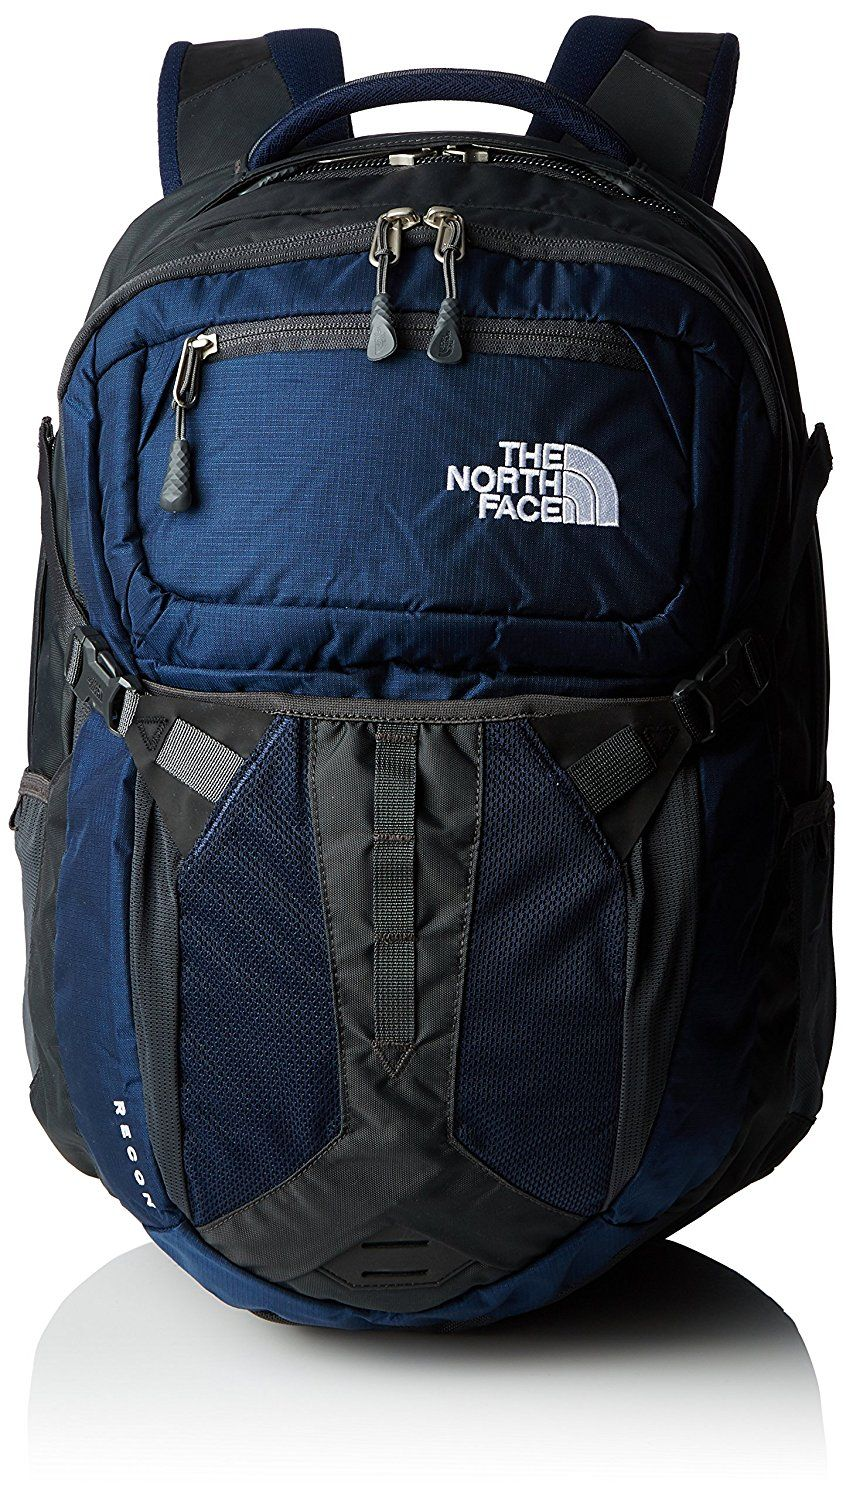 74fa27c9ed90 The North Face Unisex Recon Backpack in 2019 | Camping Bags and ...